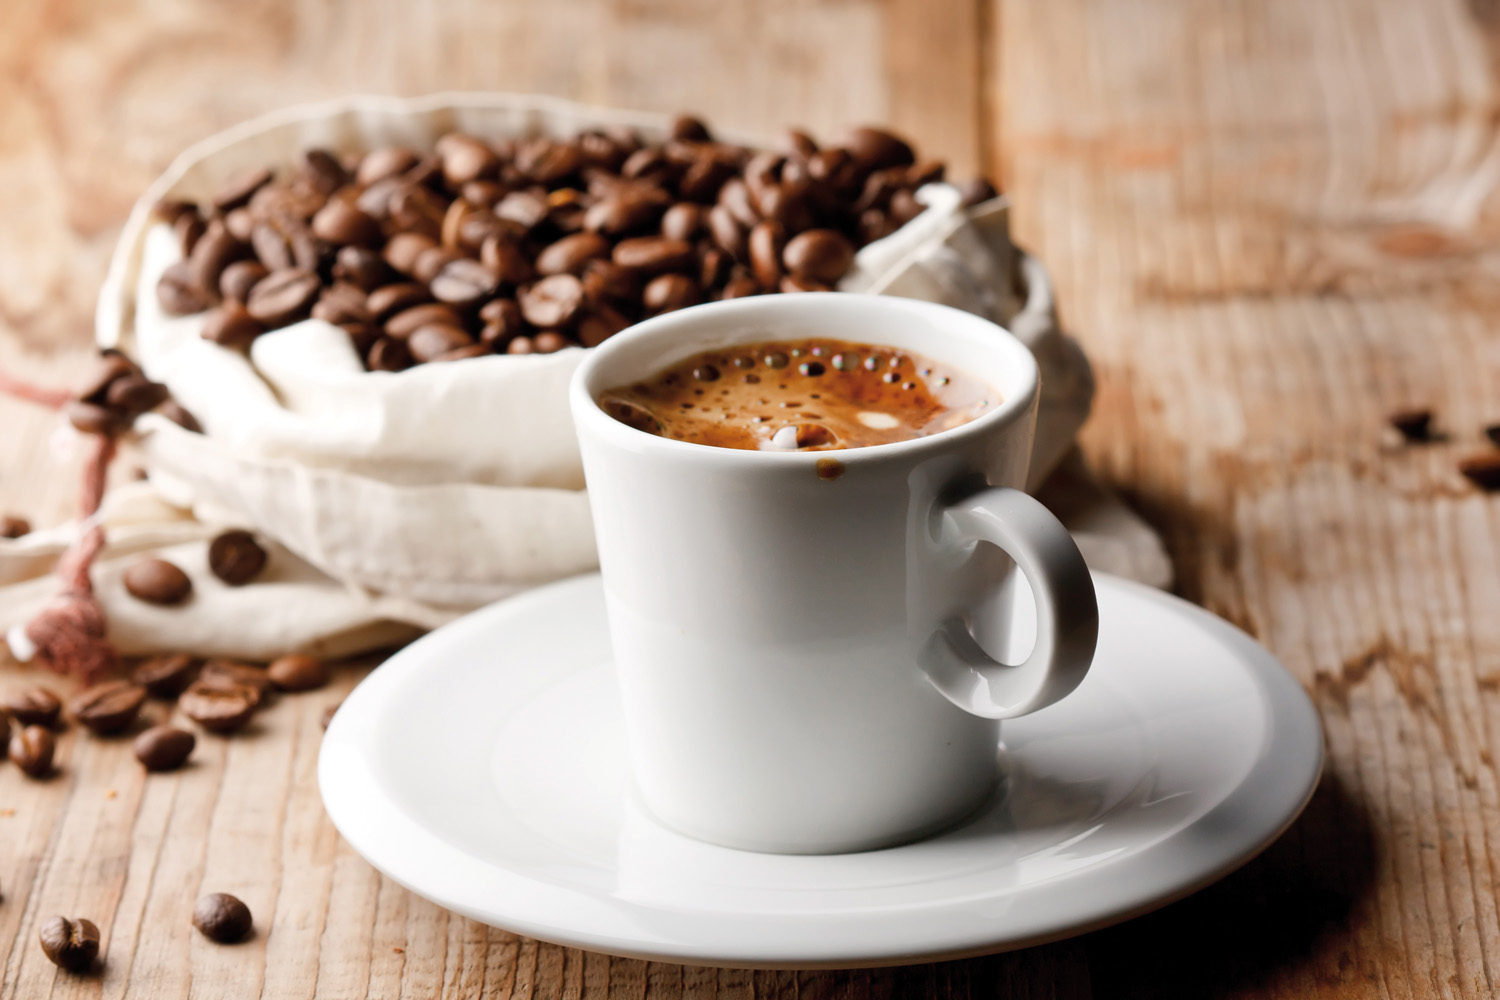 Http Healthyeatingharbor Com The Current Known Coffee Effects On Health An Evidence Based Review